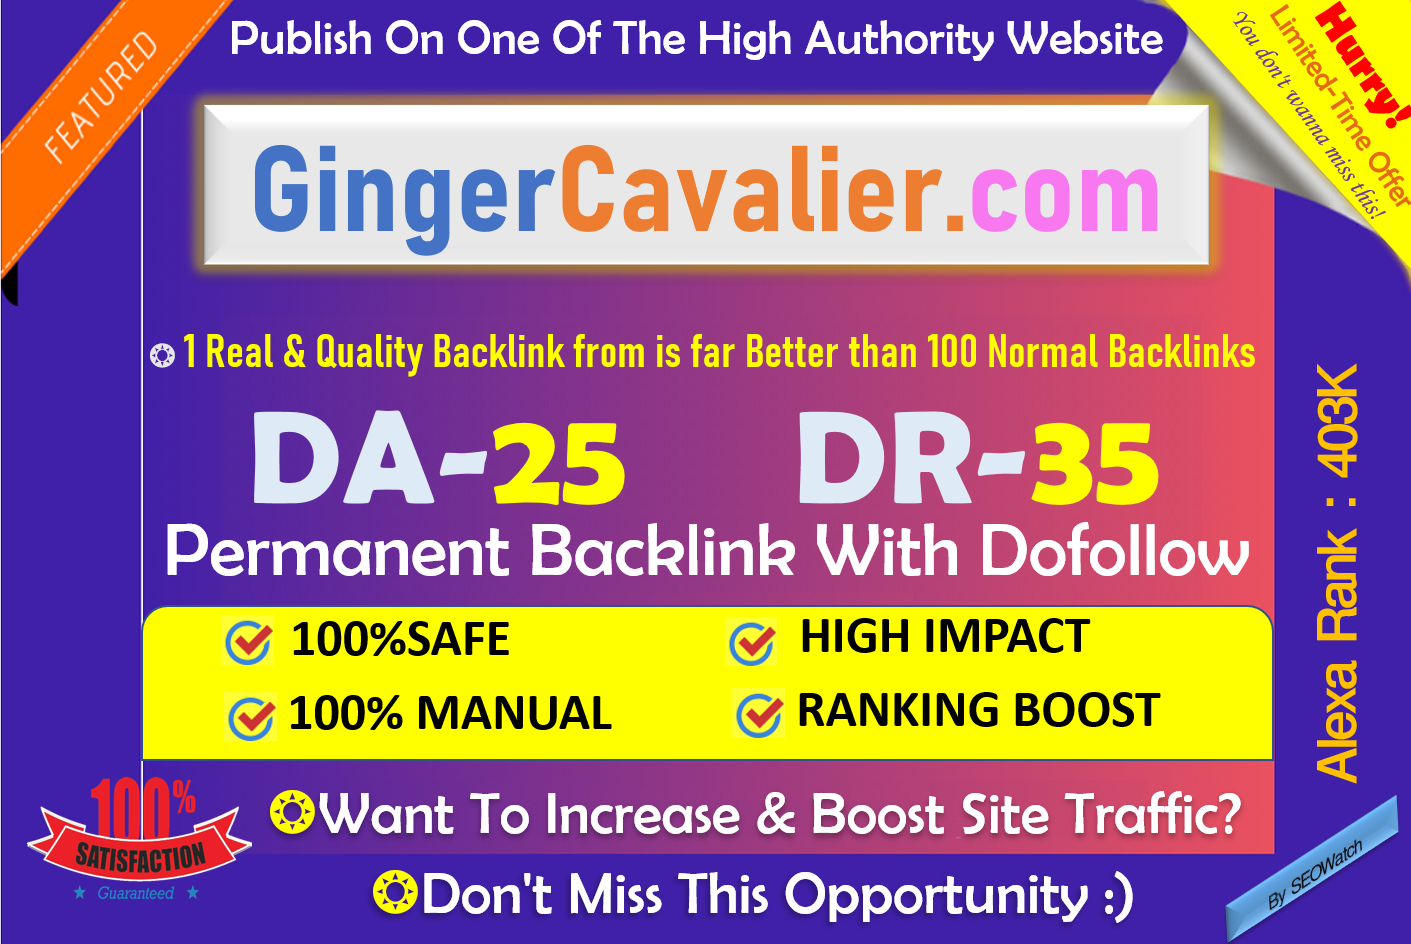 Write and Publish Pet Blog on Gingercavalier. com with Dofollow Backlink